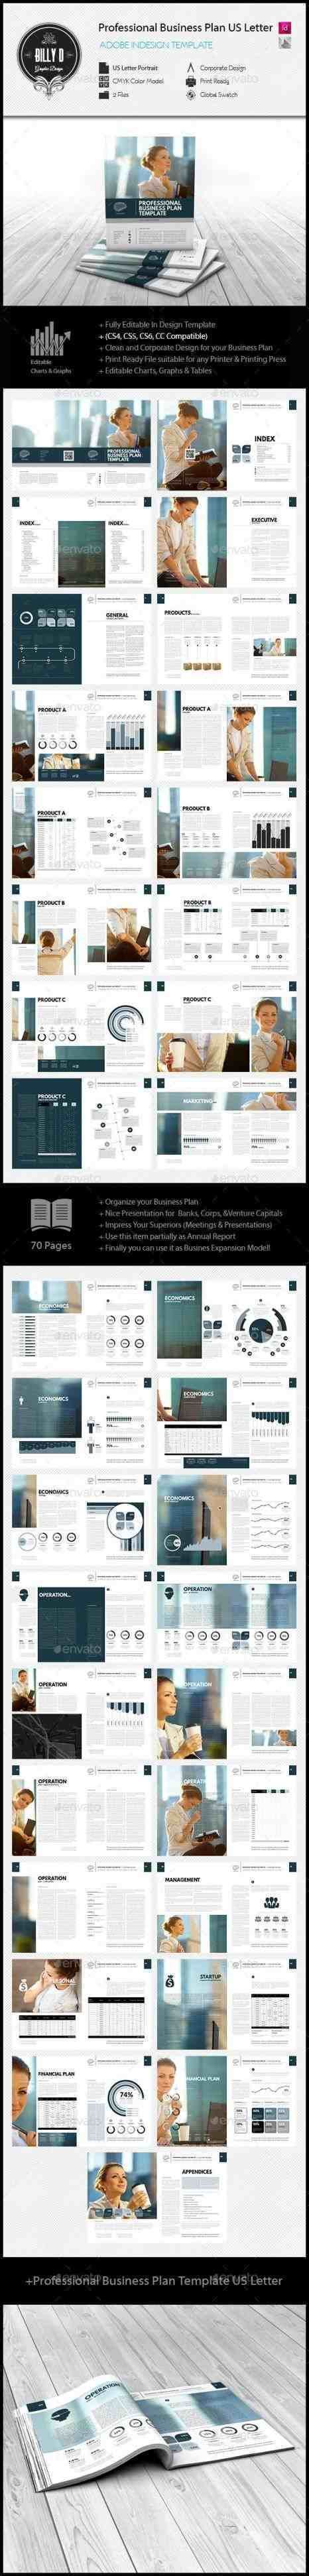 Self storage business plan template free tamplate pinterest self storage business plan template cheaphphosting Choice Image